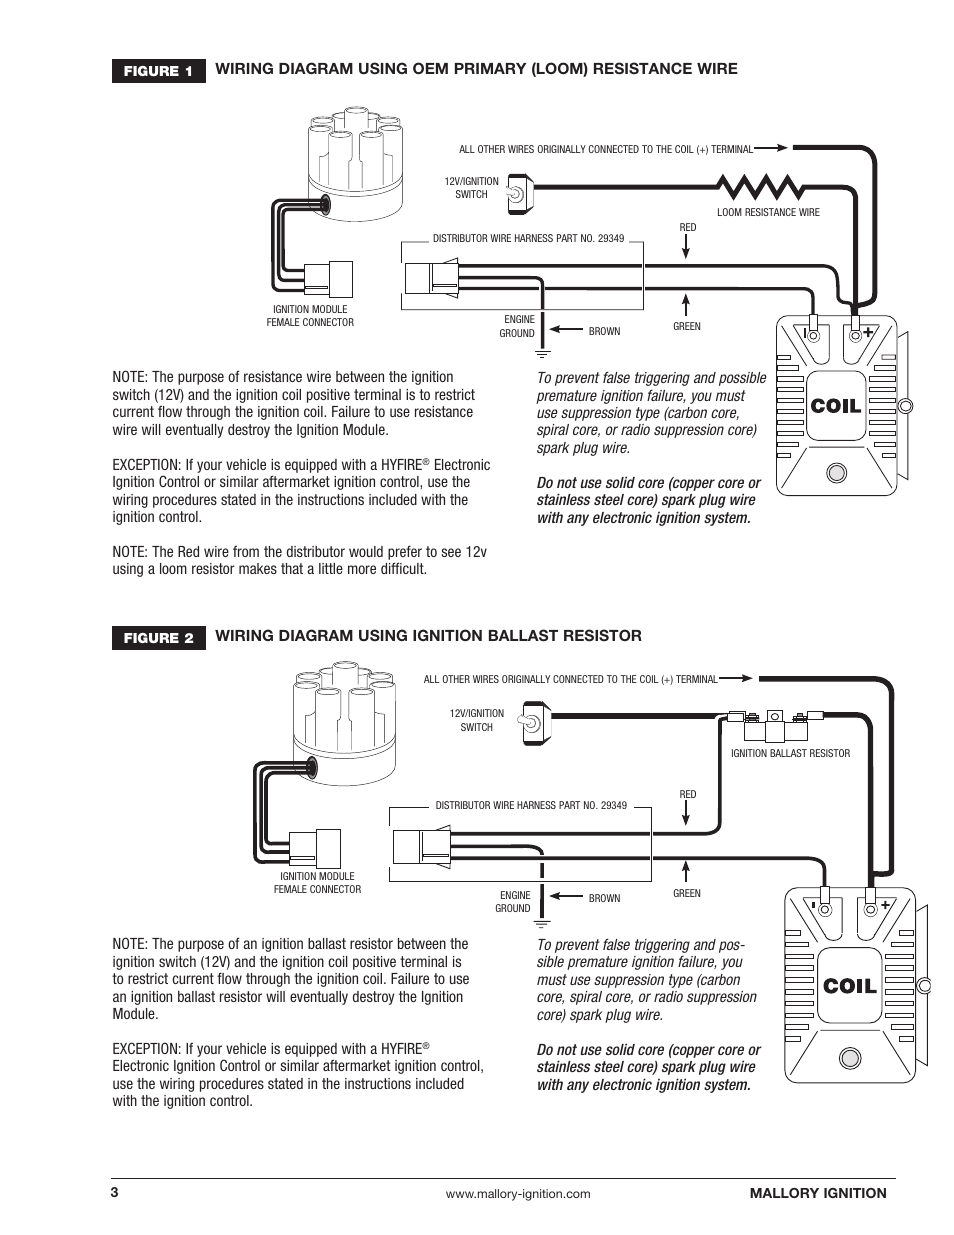 Appealing Mallory Hyfire Wiring-diagram Unilite Gallery - Best Image ...